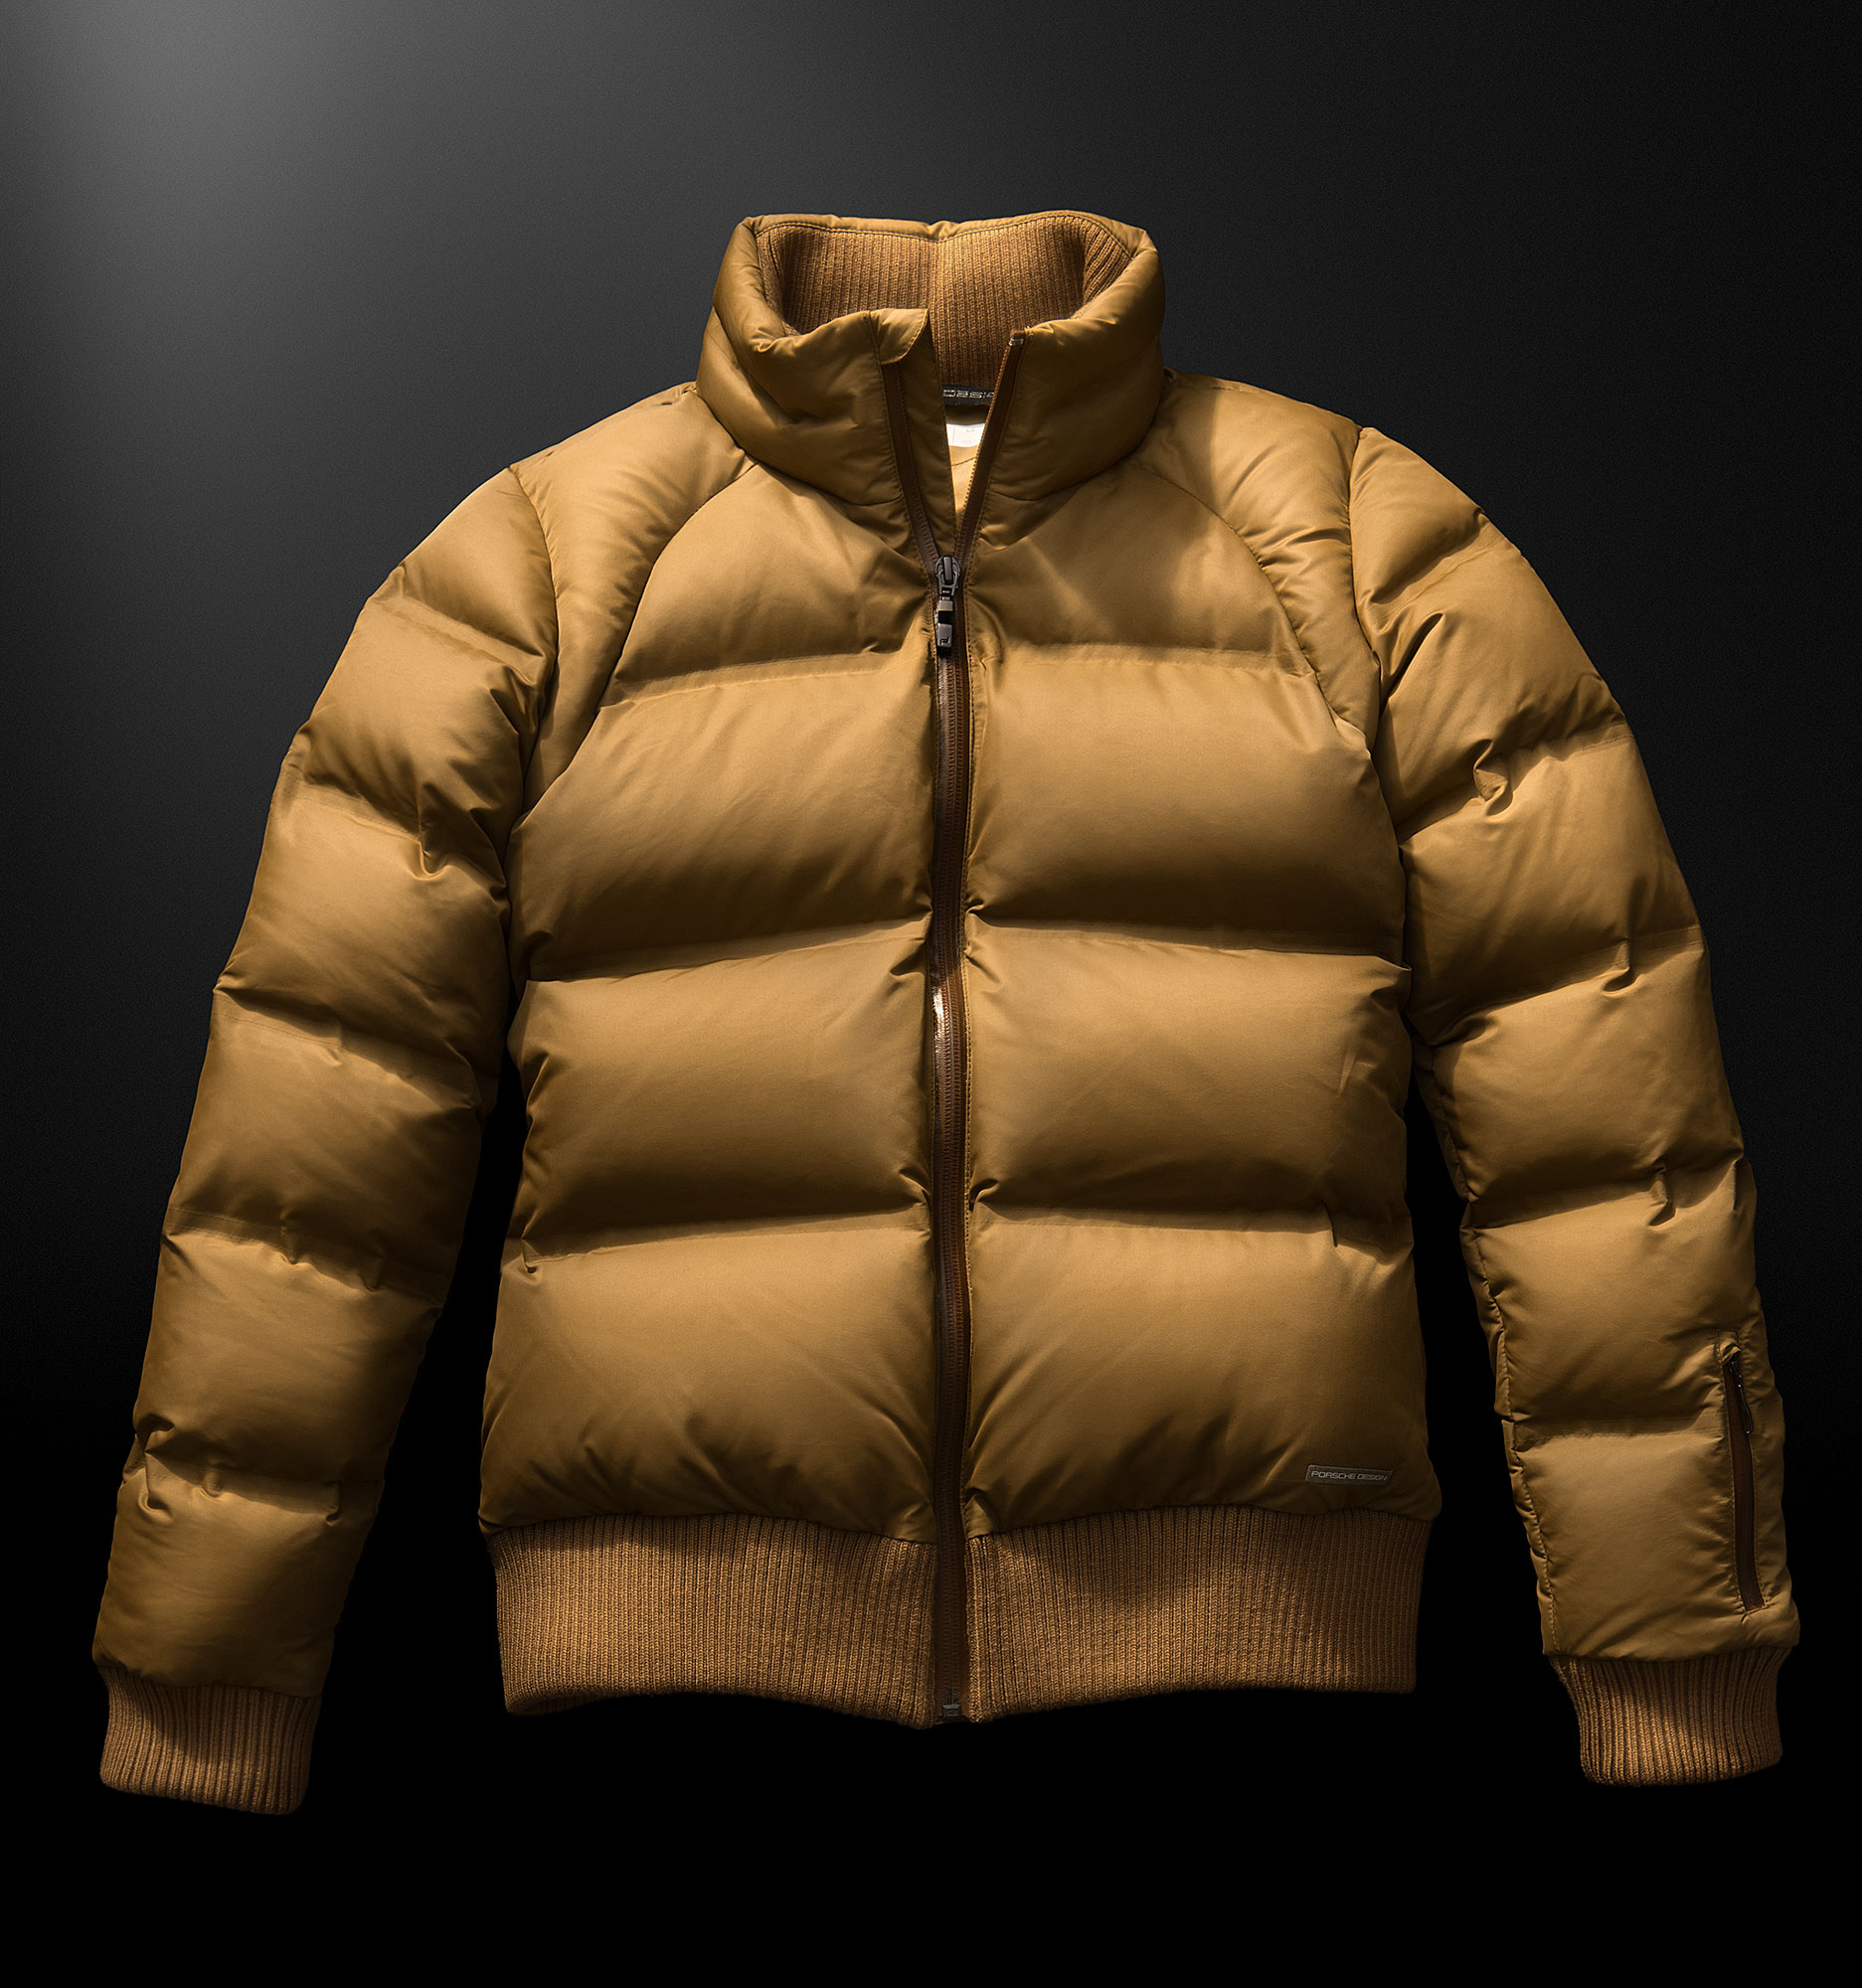 002-D-G91125-W-Bonded-Down-Jacket